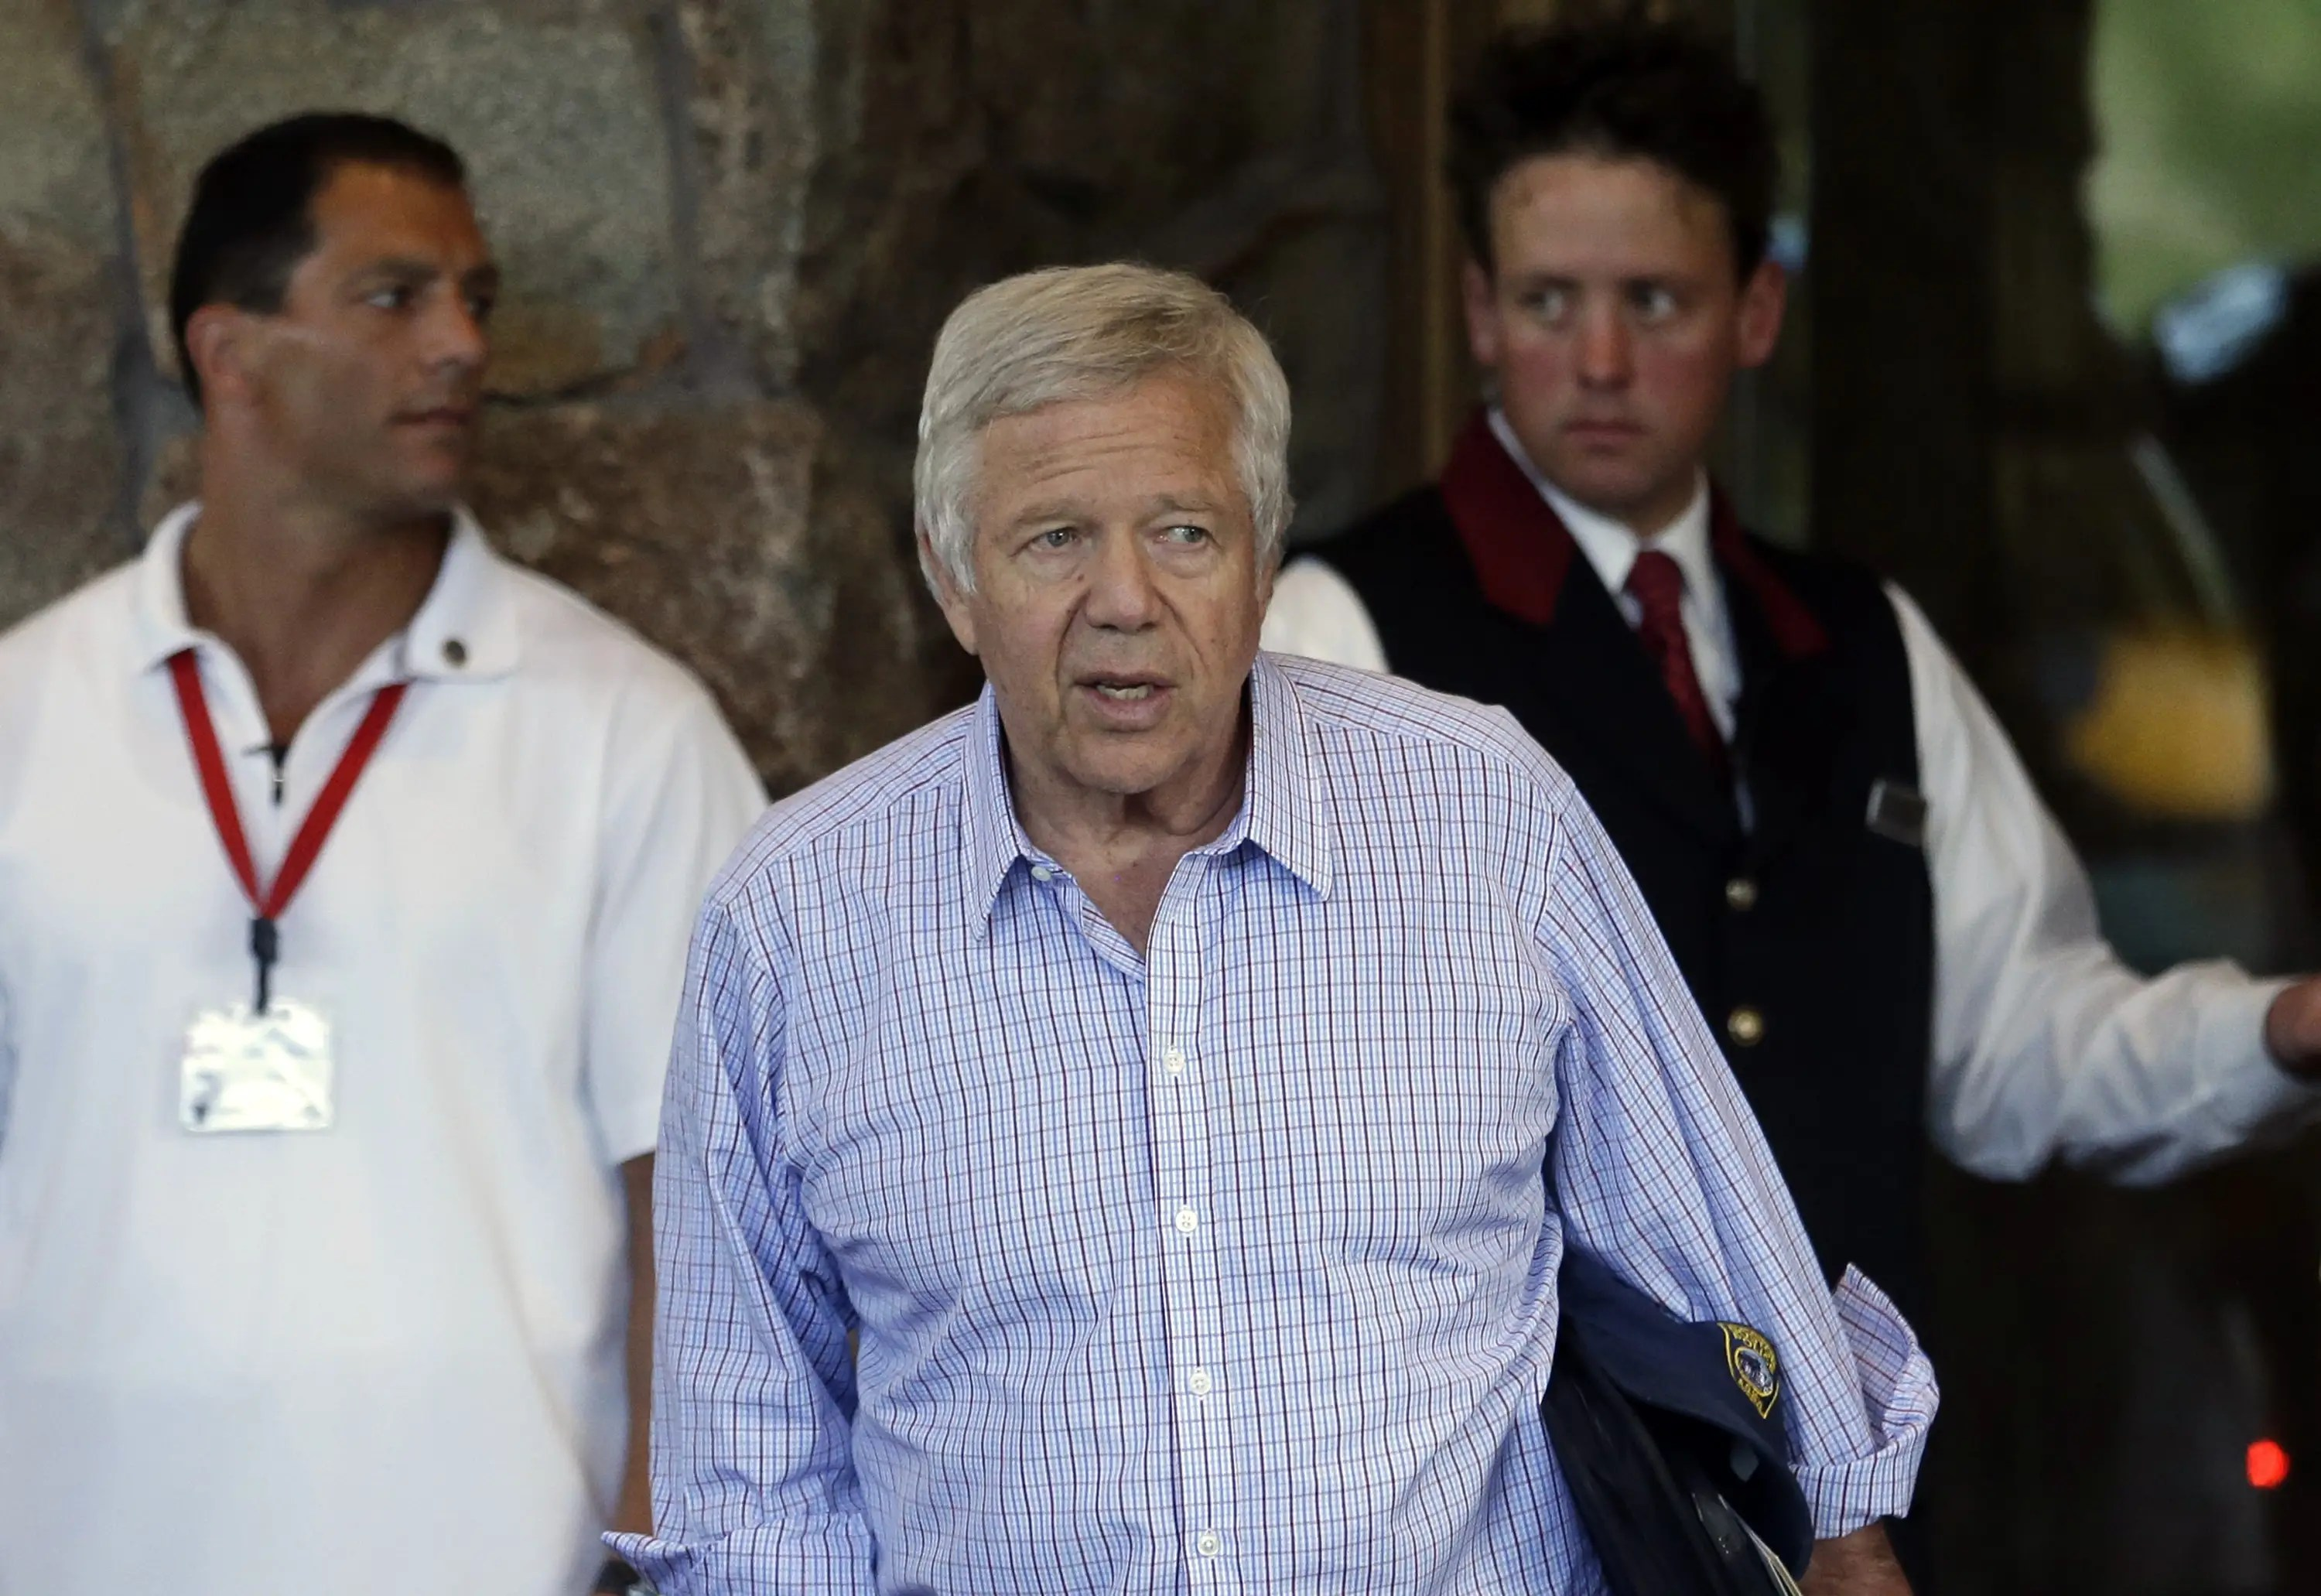 Patriots owner Robert Kraft is probably going to get a lot of questions about Aaron Hernandez.